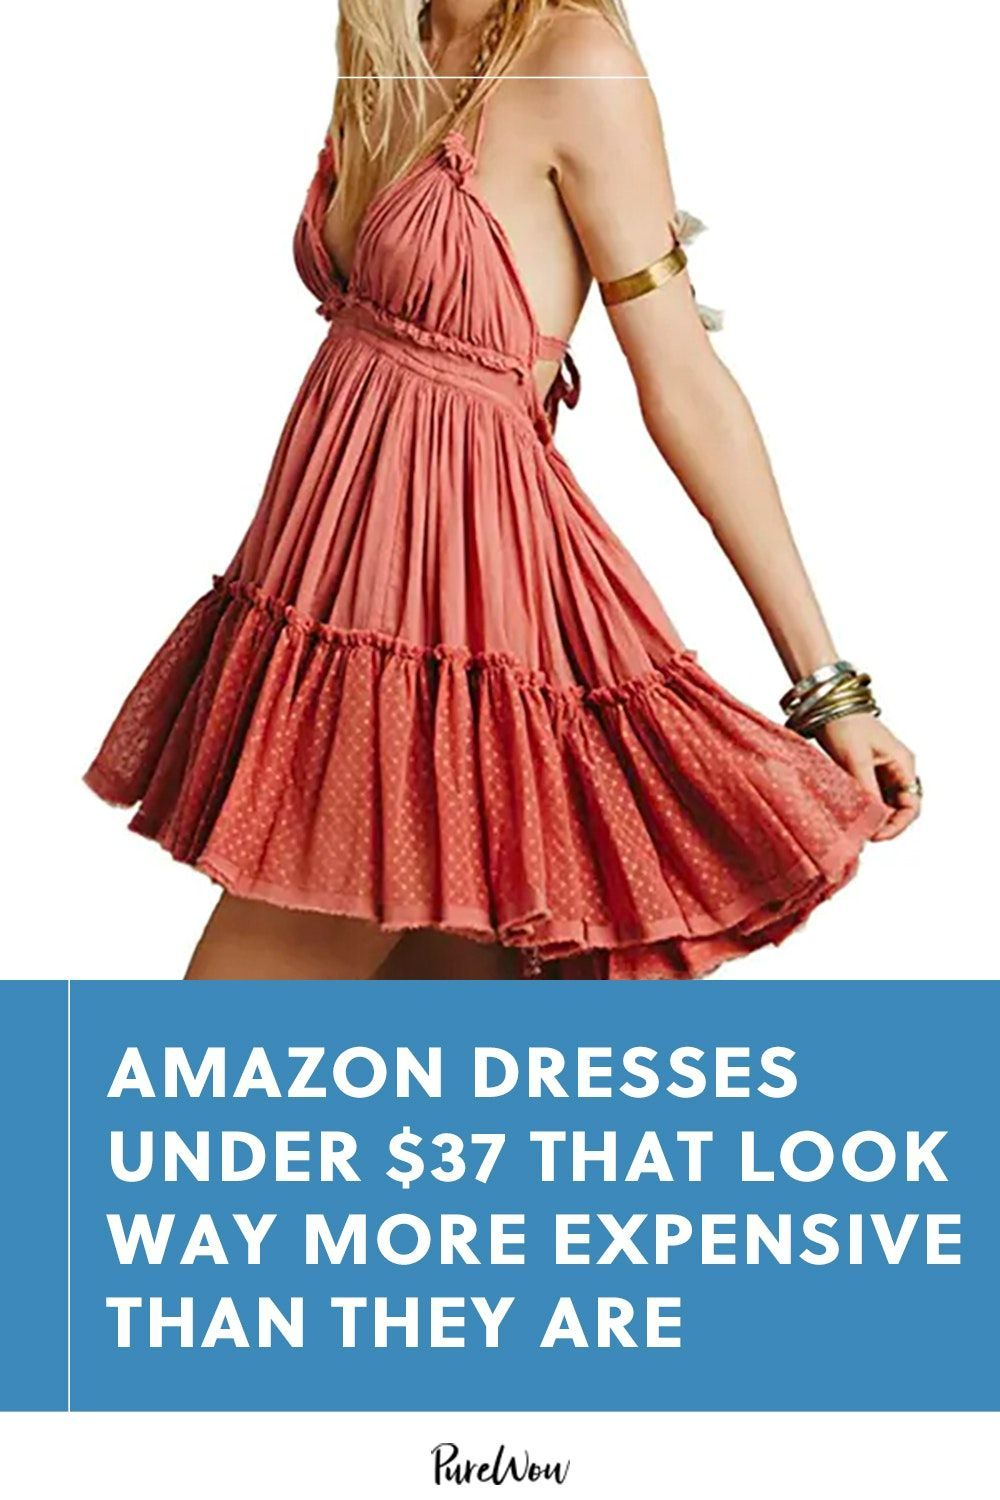 Summer Dresses From Amazon That Are All Affordable Wishes Reality In 2020 Affordable Summer Dresses Simple Summer Outfits Summer Dresses